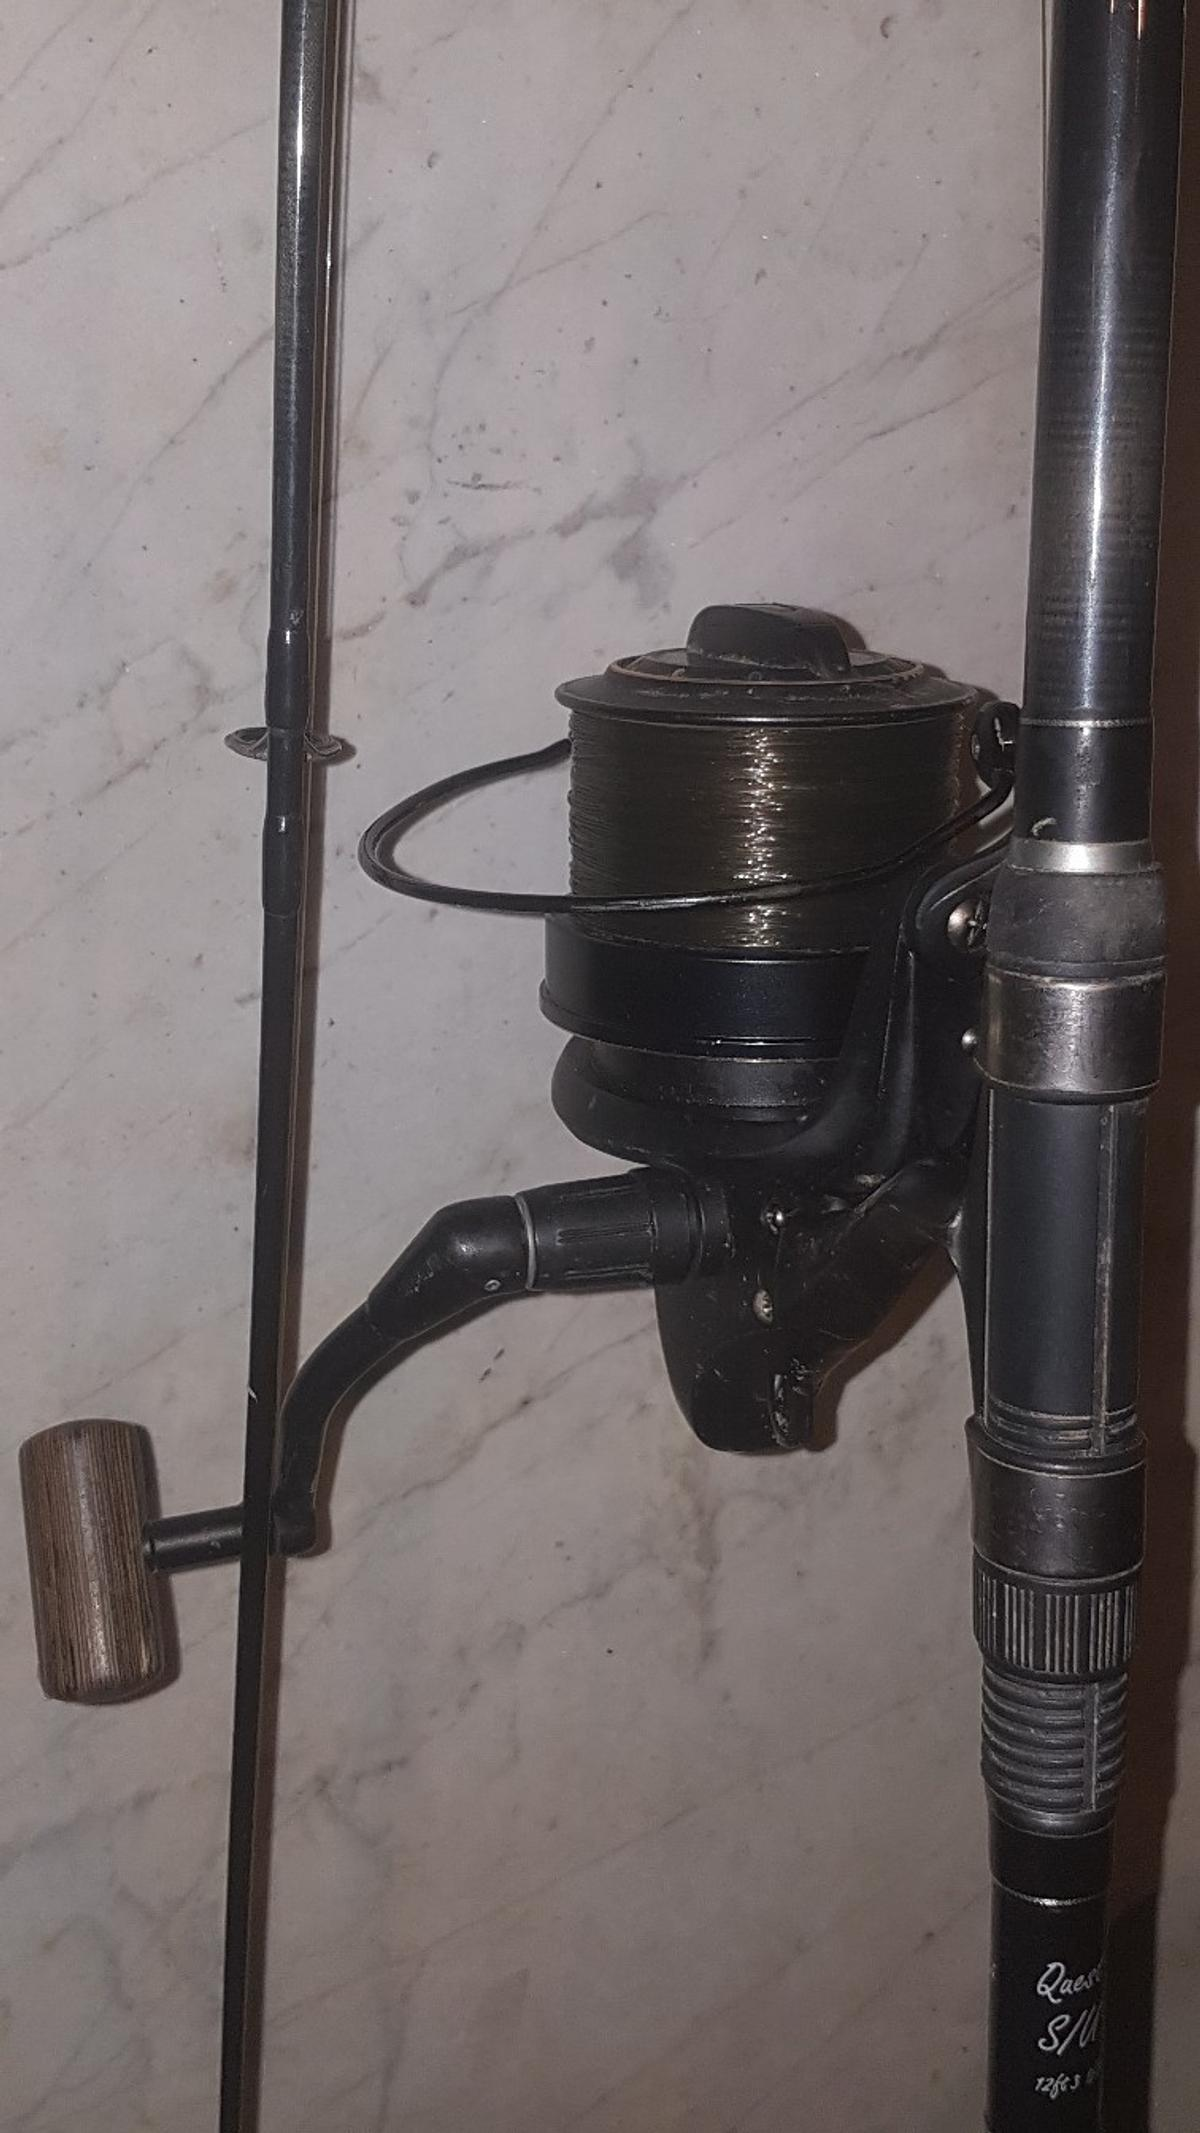 Carp fishing gear in Doncaster for £350.00 for sale | Shpock